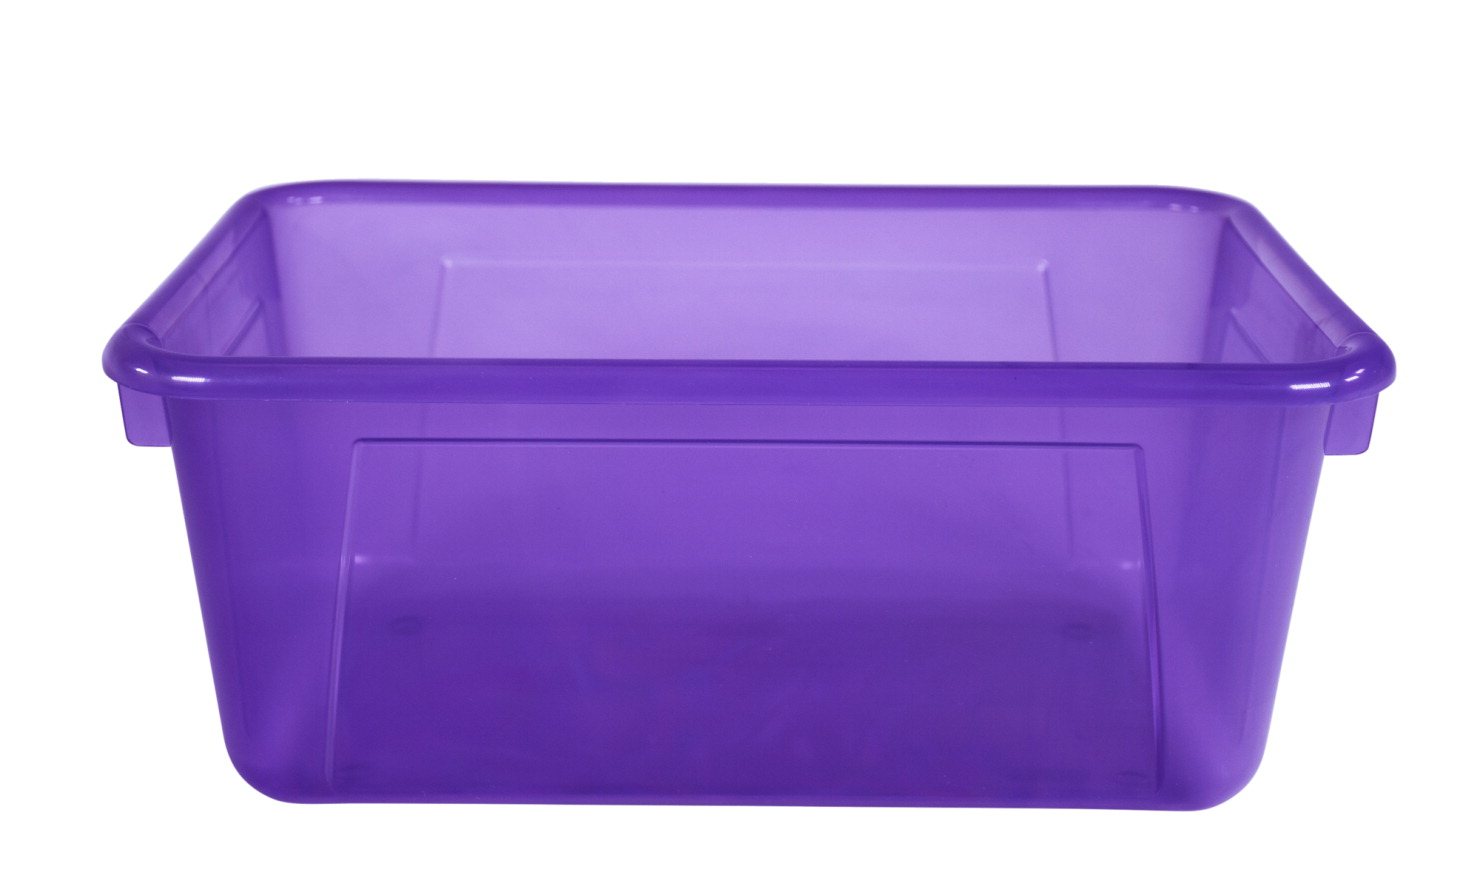 School Smart Translucent Cubby Bin, Small, 12 x 8 x 5 Inches, Candy Violet